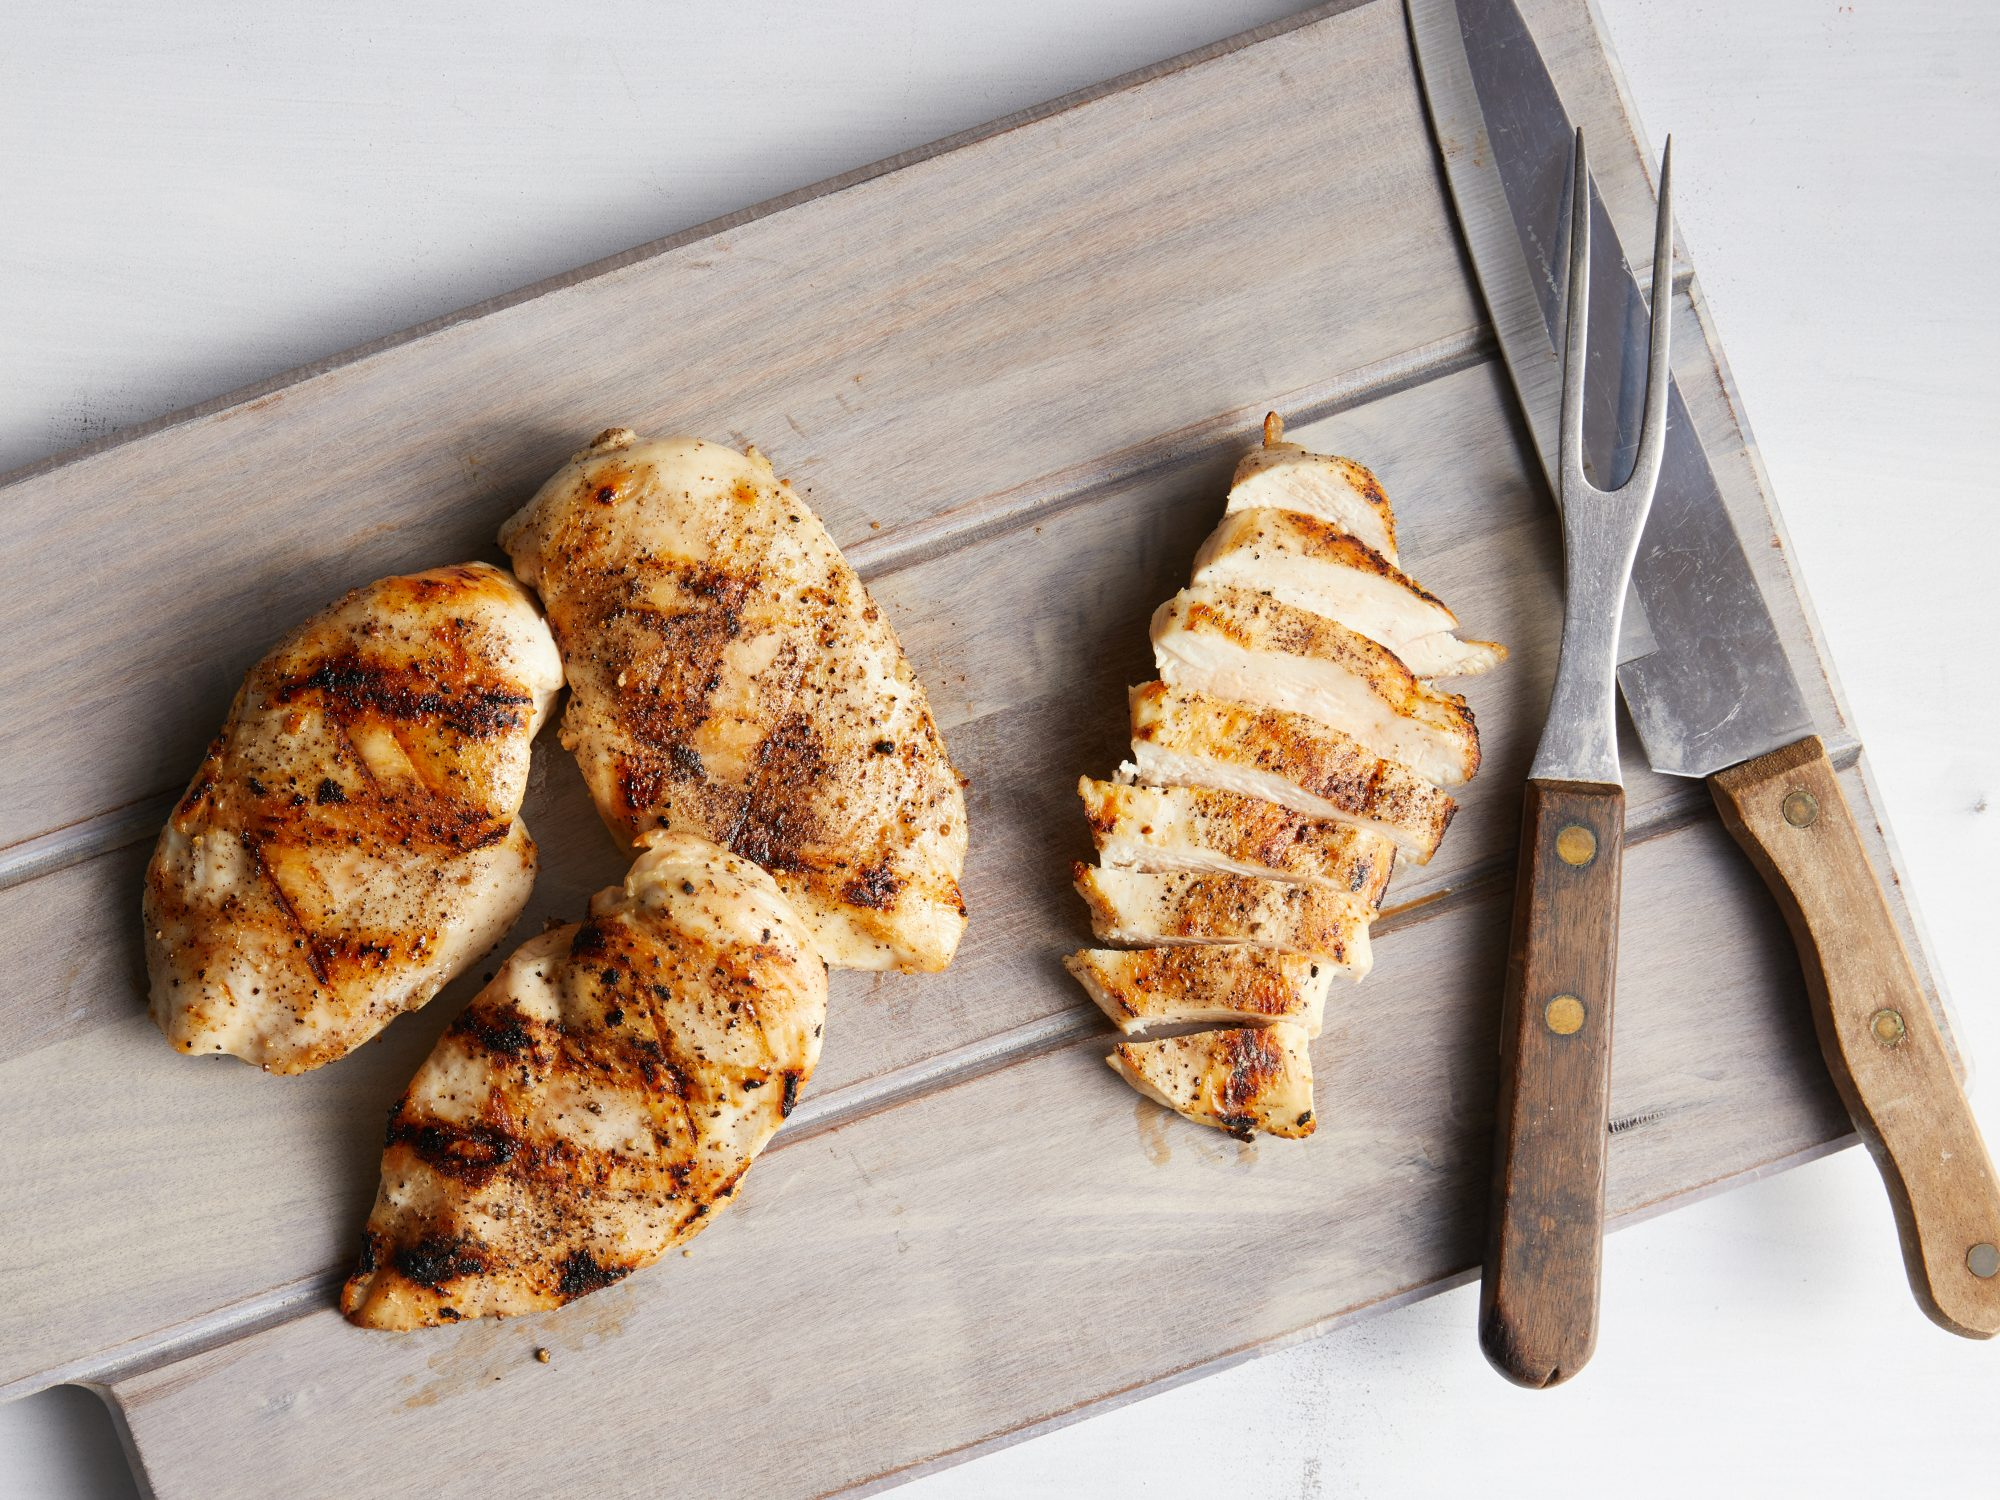 Mr Steak Grill Review Chicken Image